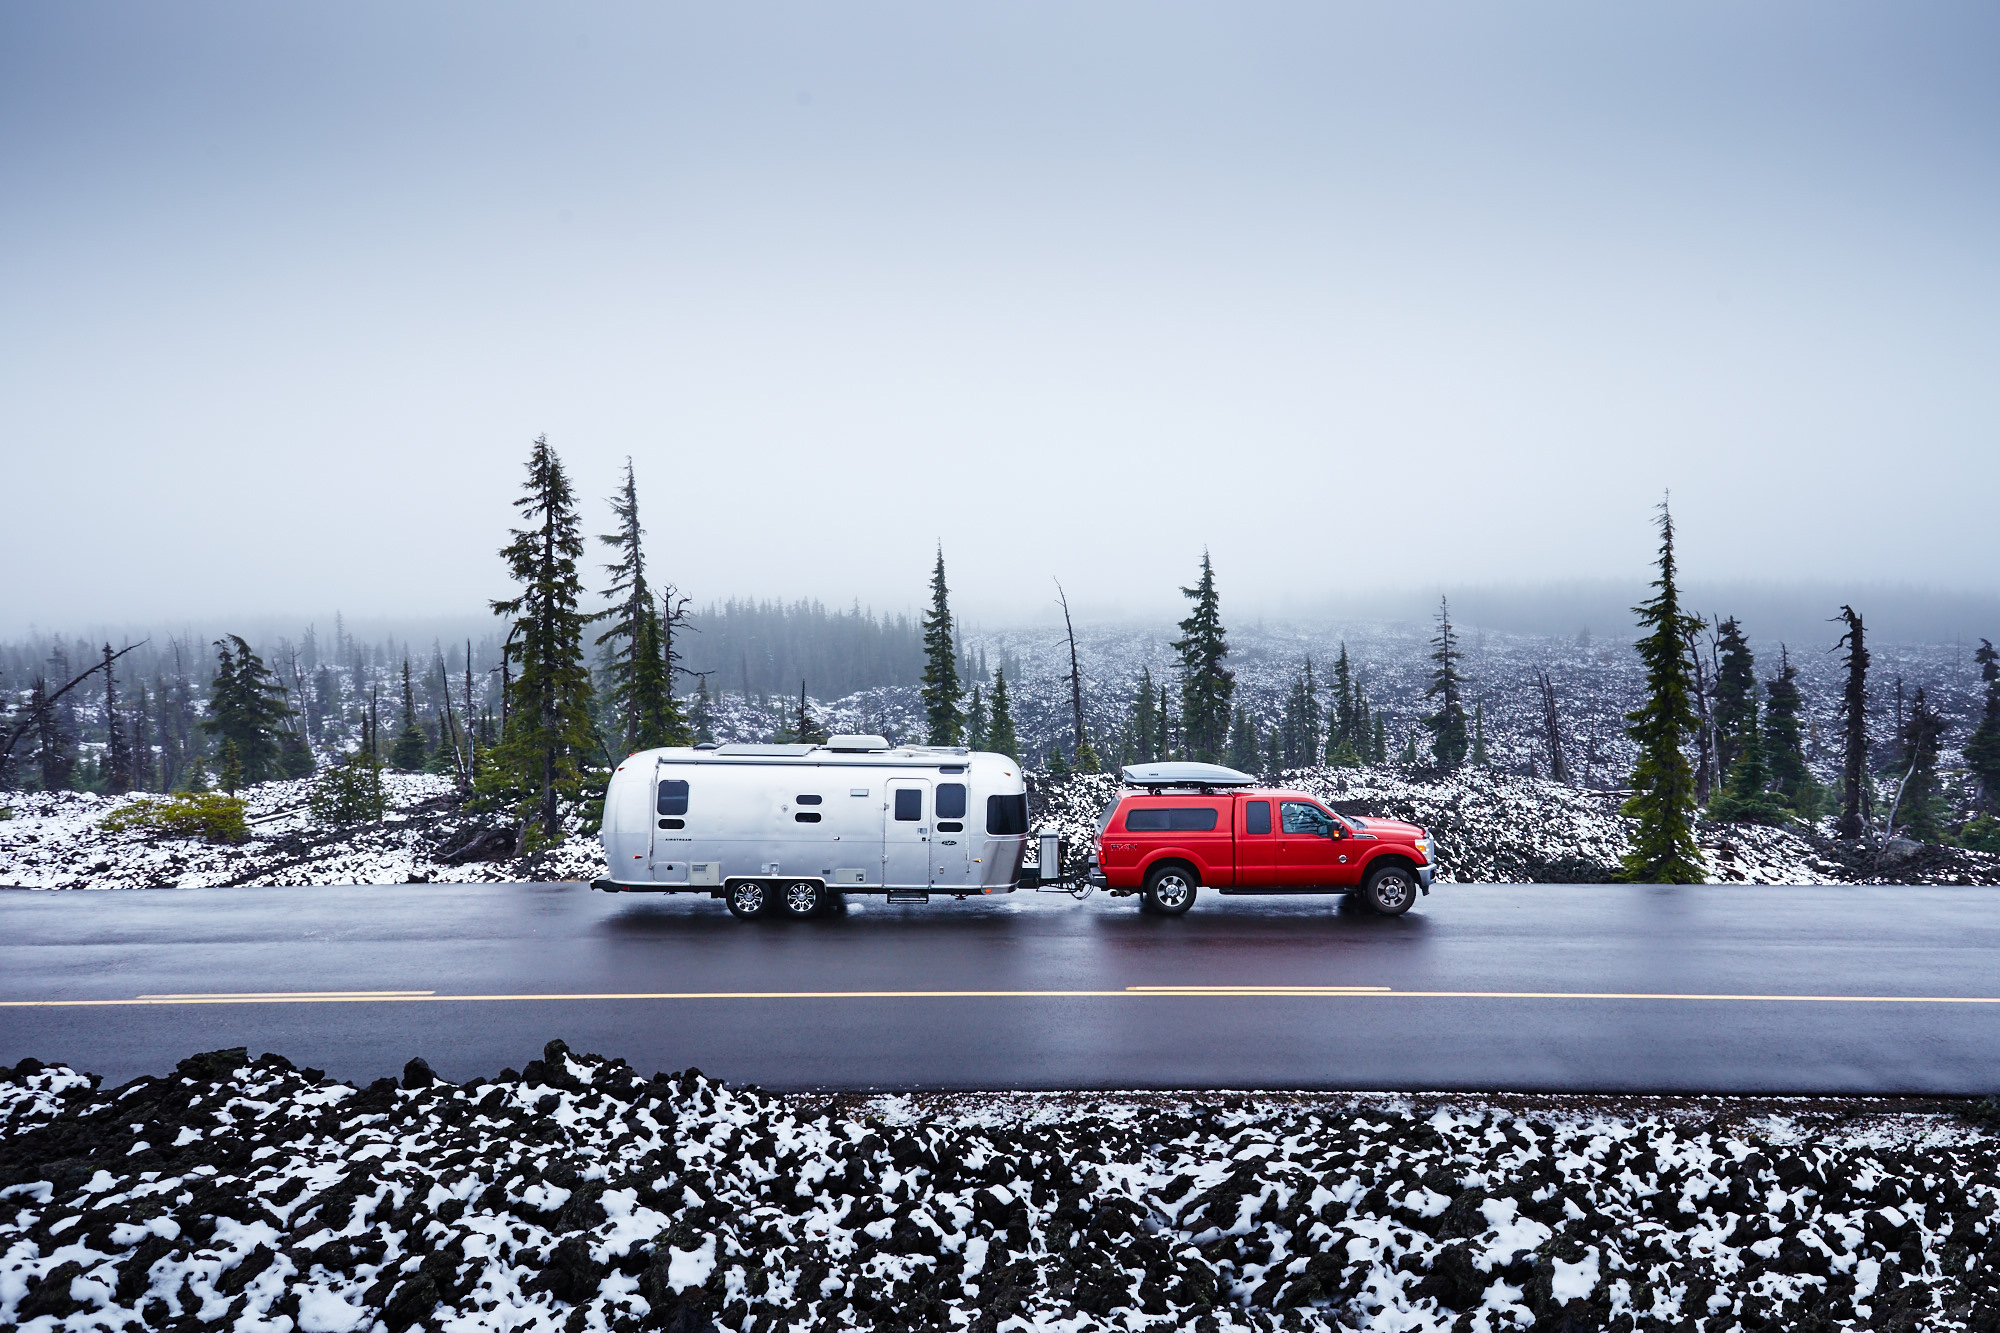 photographer captures the meaning of home while living nomadically